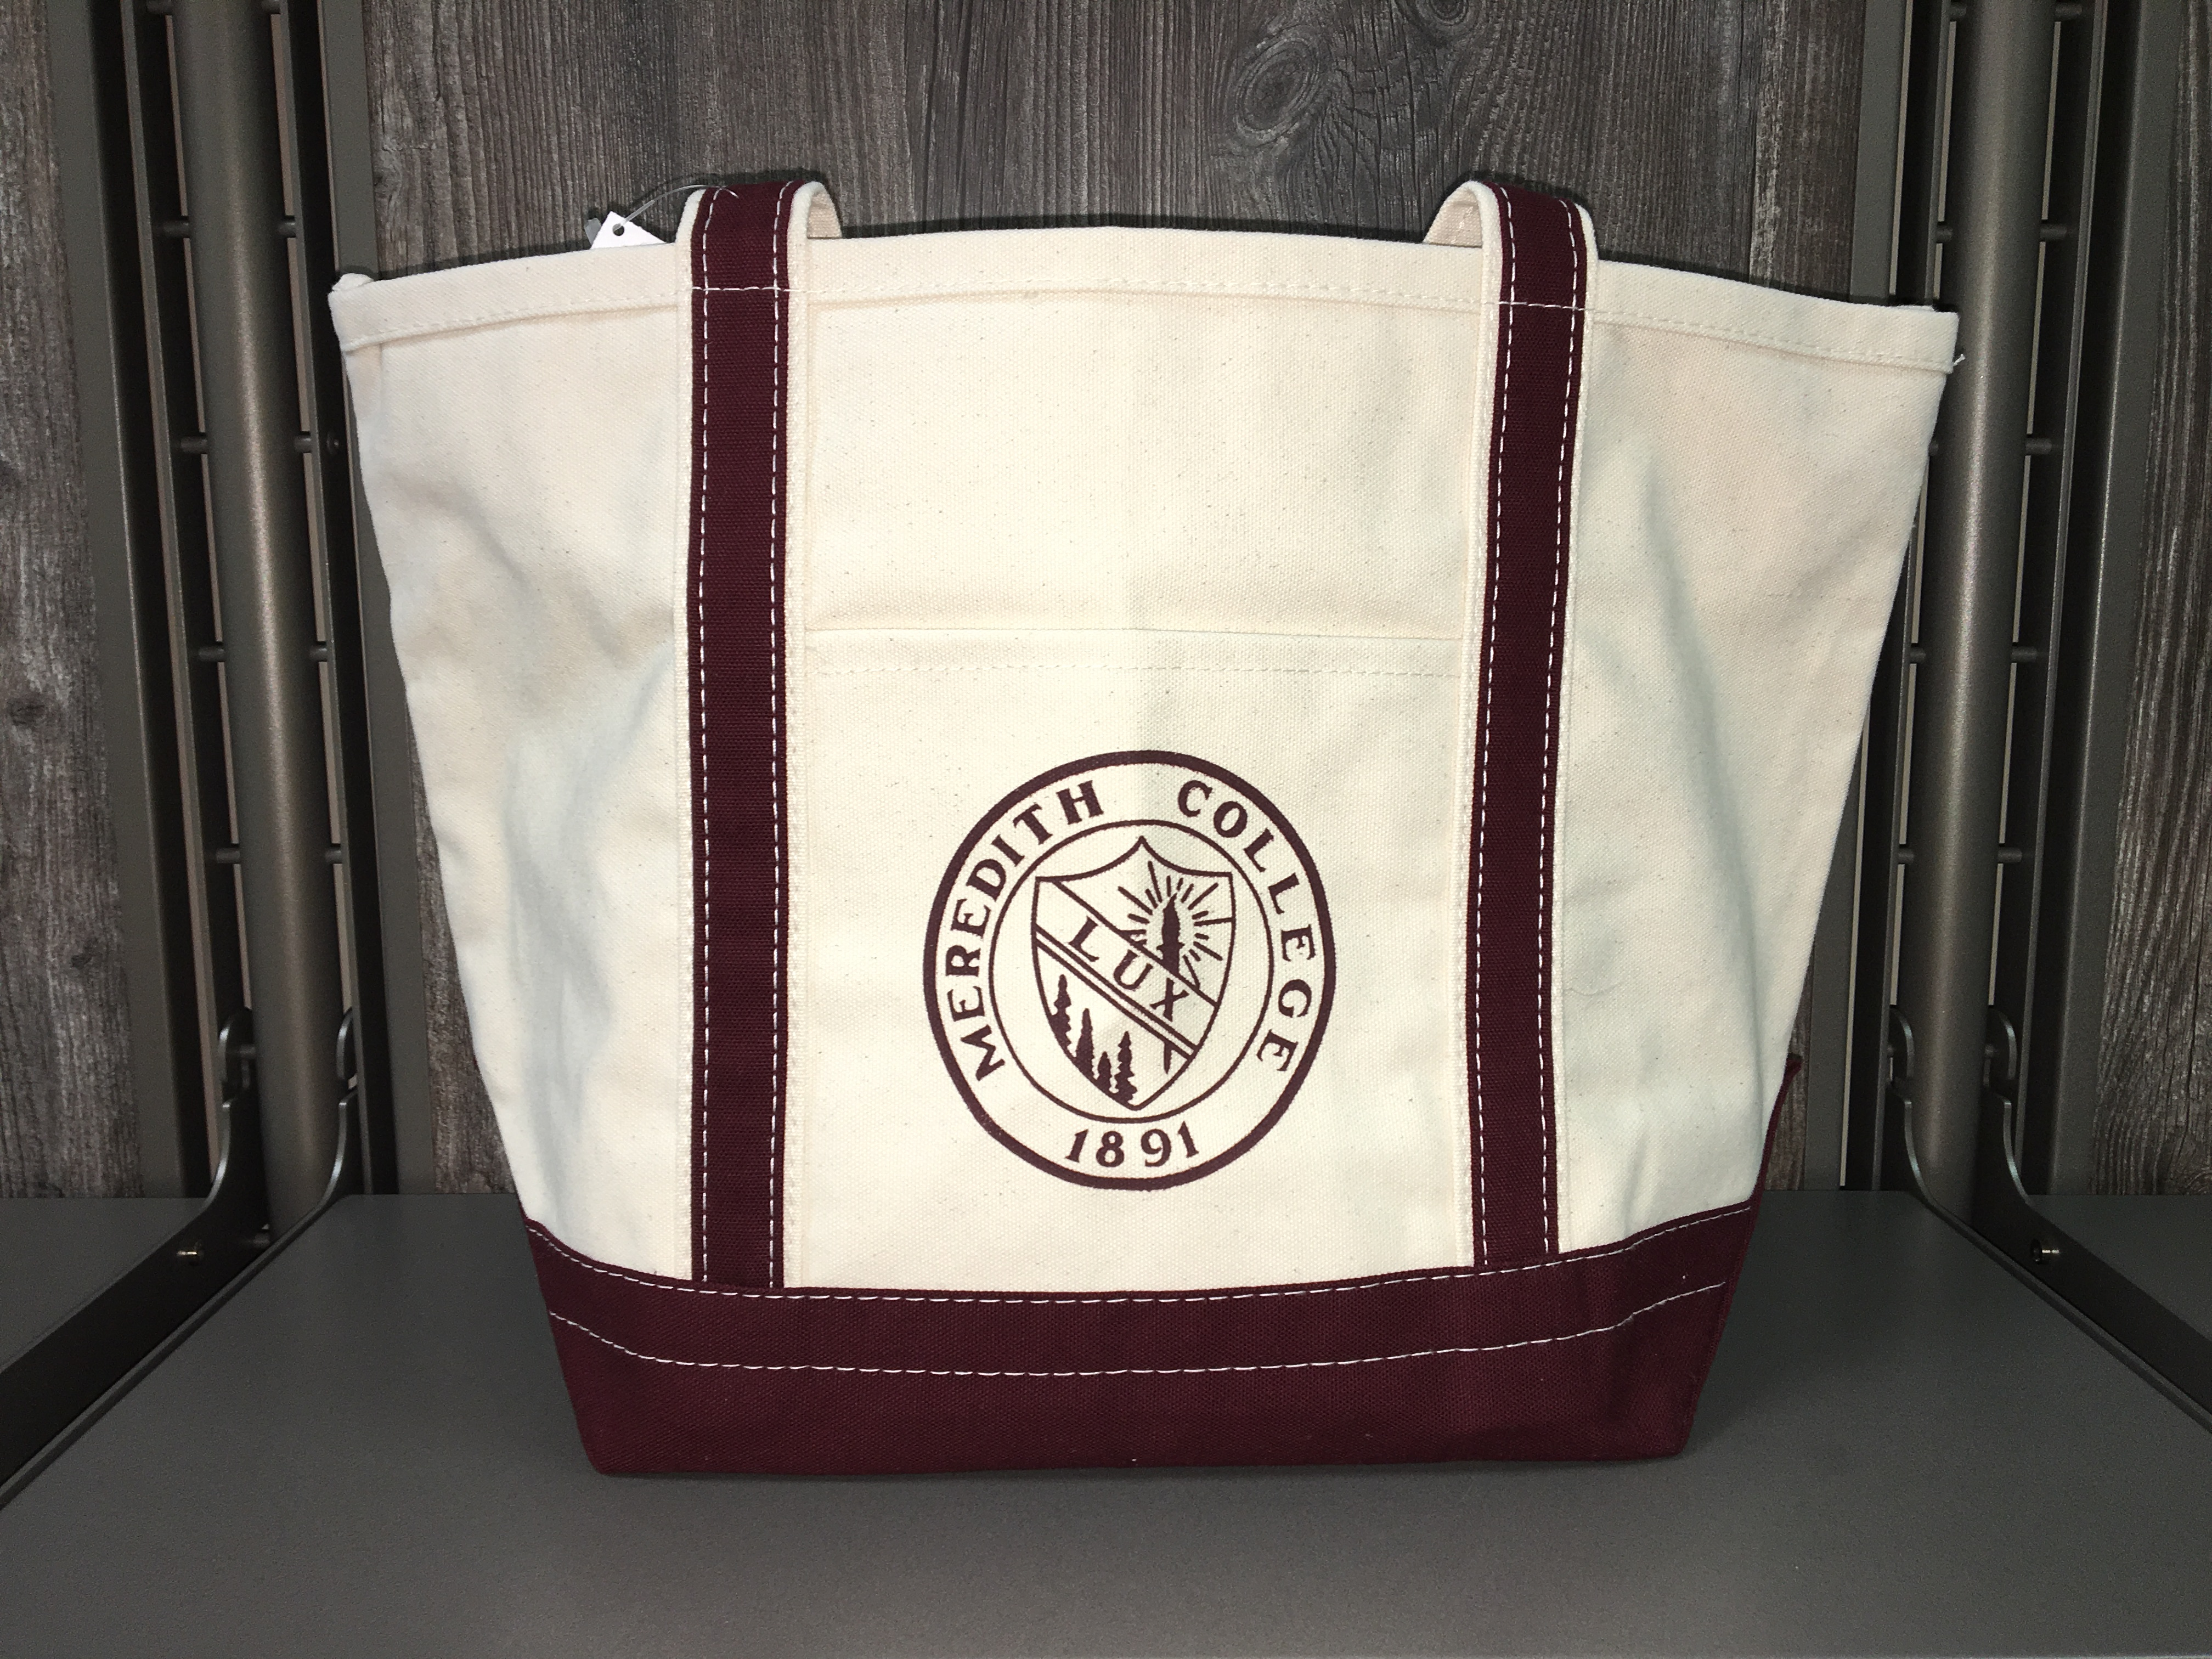 Image for the Canvas Tote, Seal product